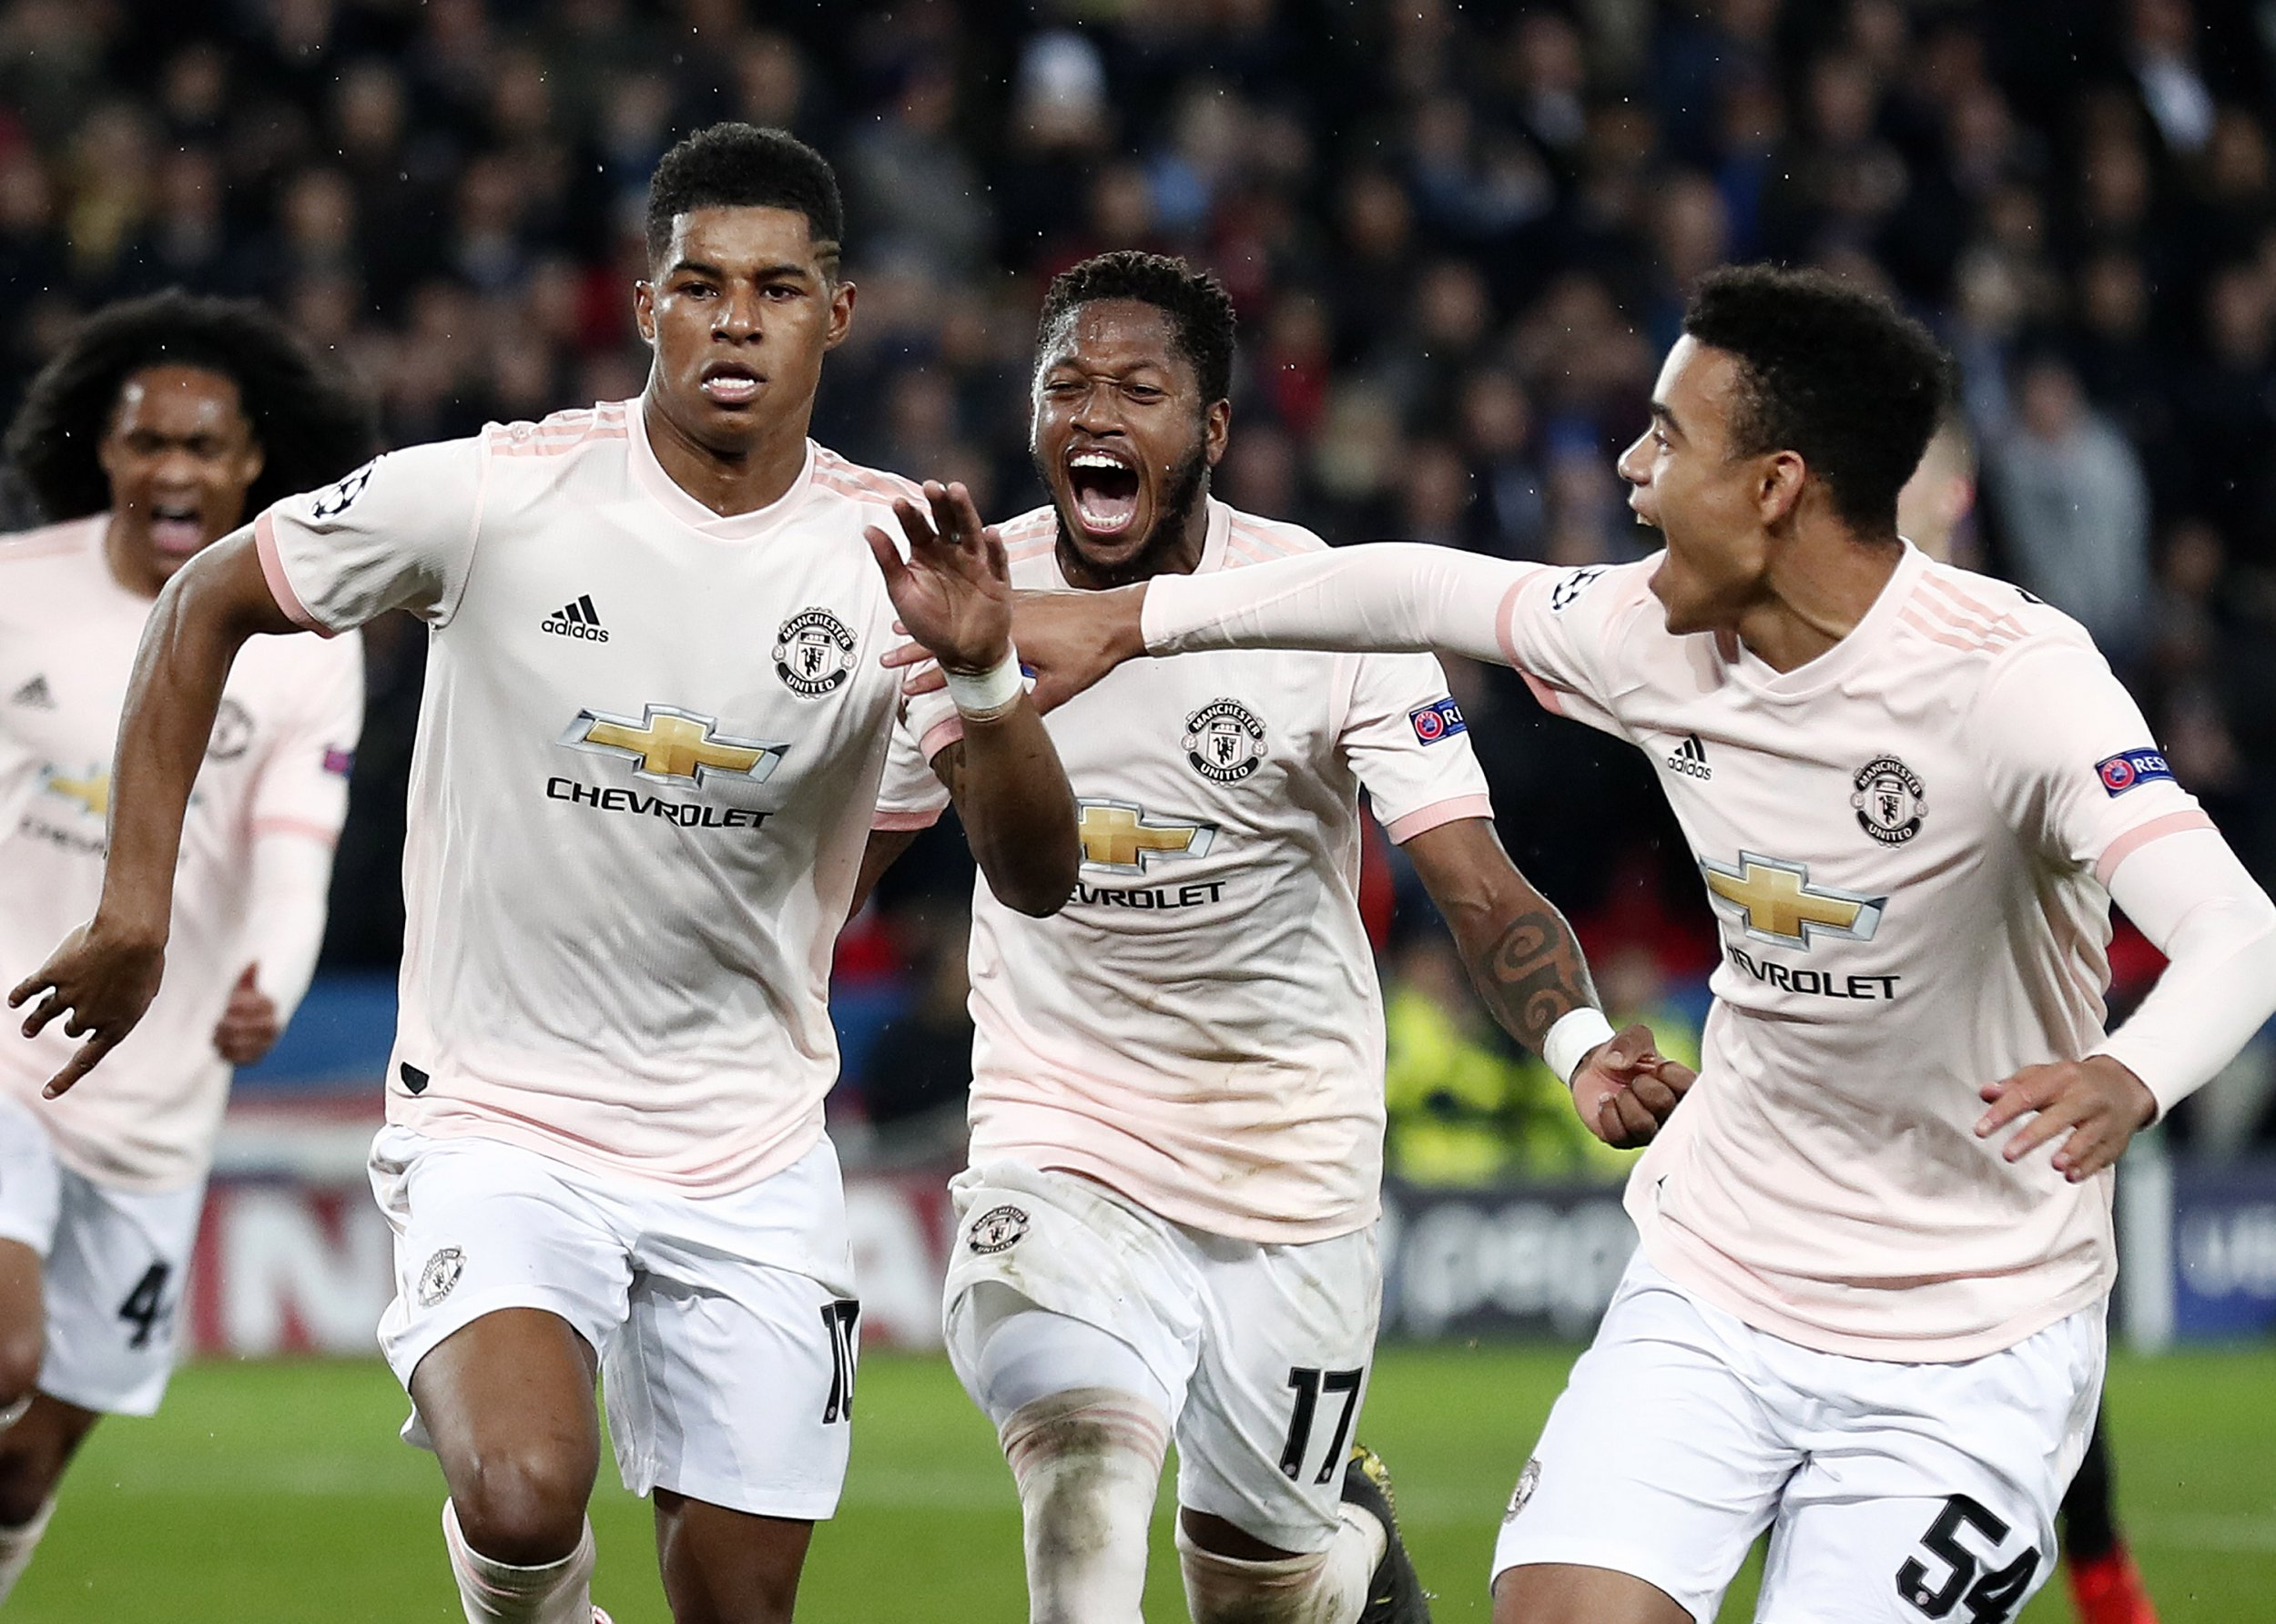 epa07418265 Manchester's Marcus Rashford (L), Fred (C) and Mason Greenwood (R) celebrate the 3-1 lead during the UEFA Champions League round of 16 second leg soccer match between PSG and Manchester United at the Parc des Princes Stadium in Paris, France, 06 March 2019. EPA/IAN LANGSDON